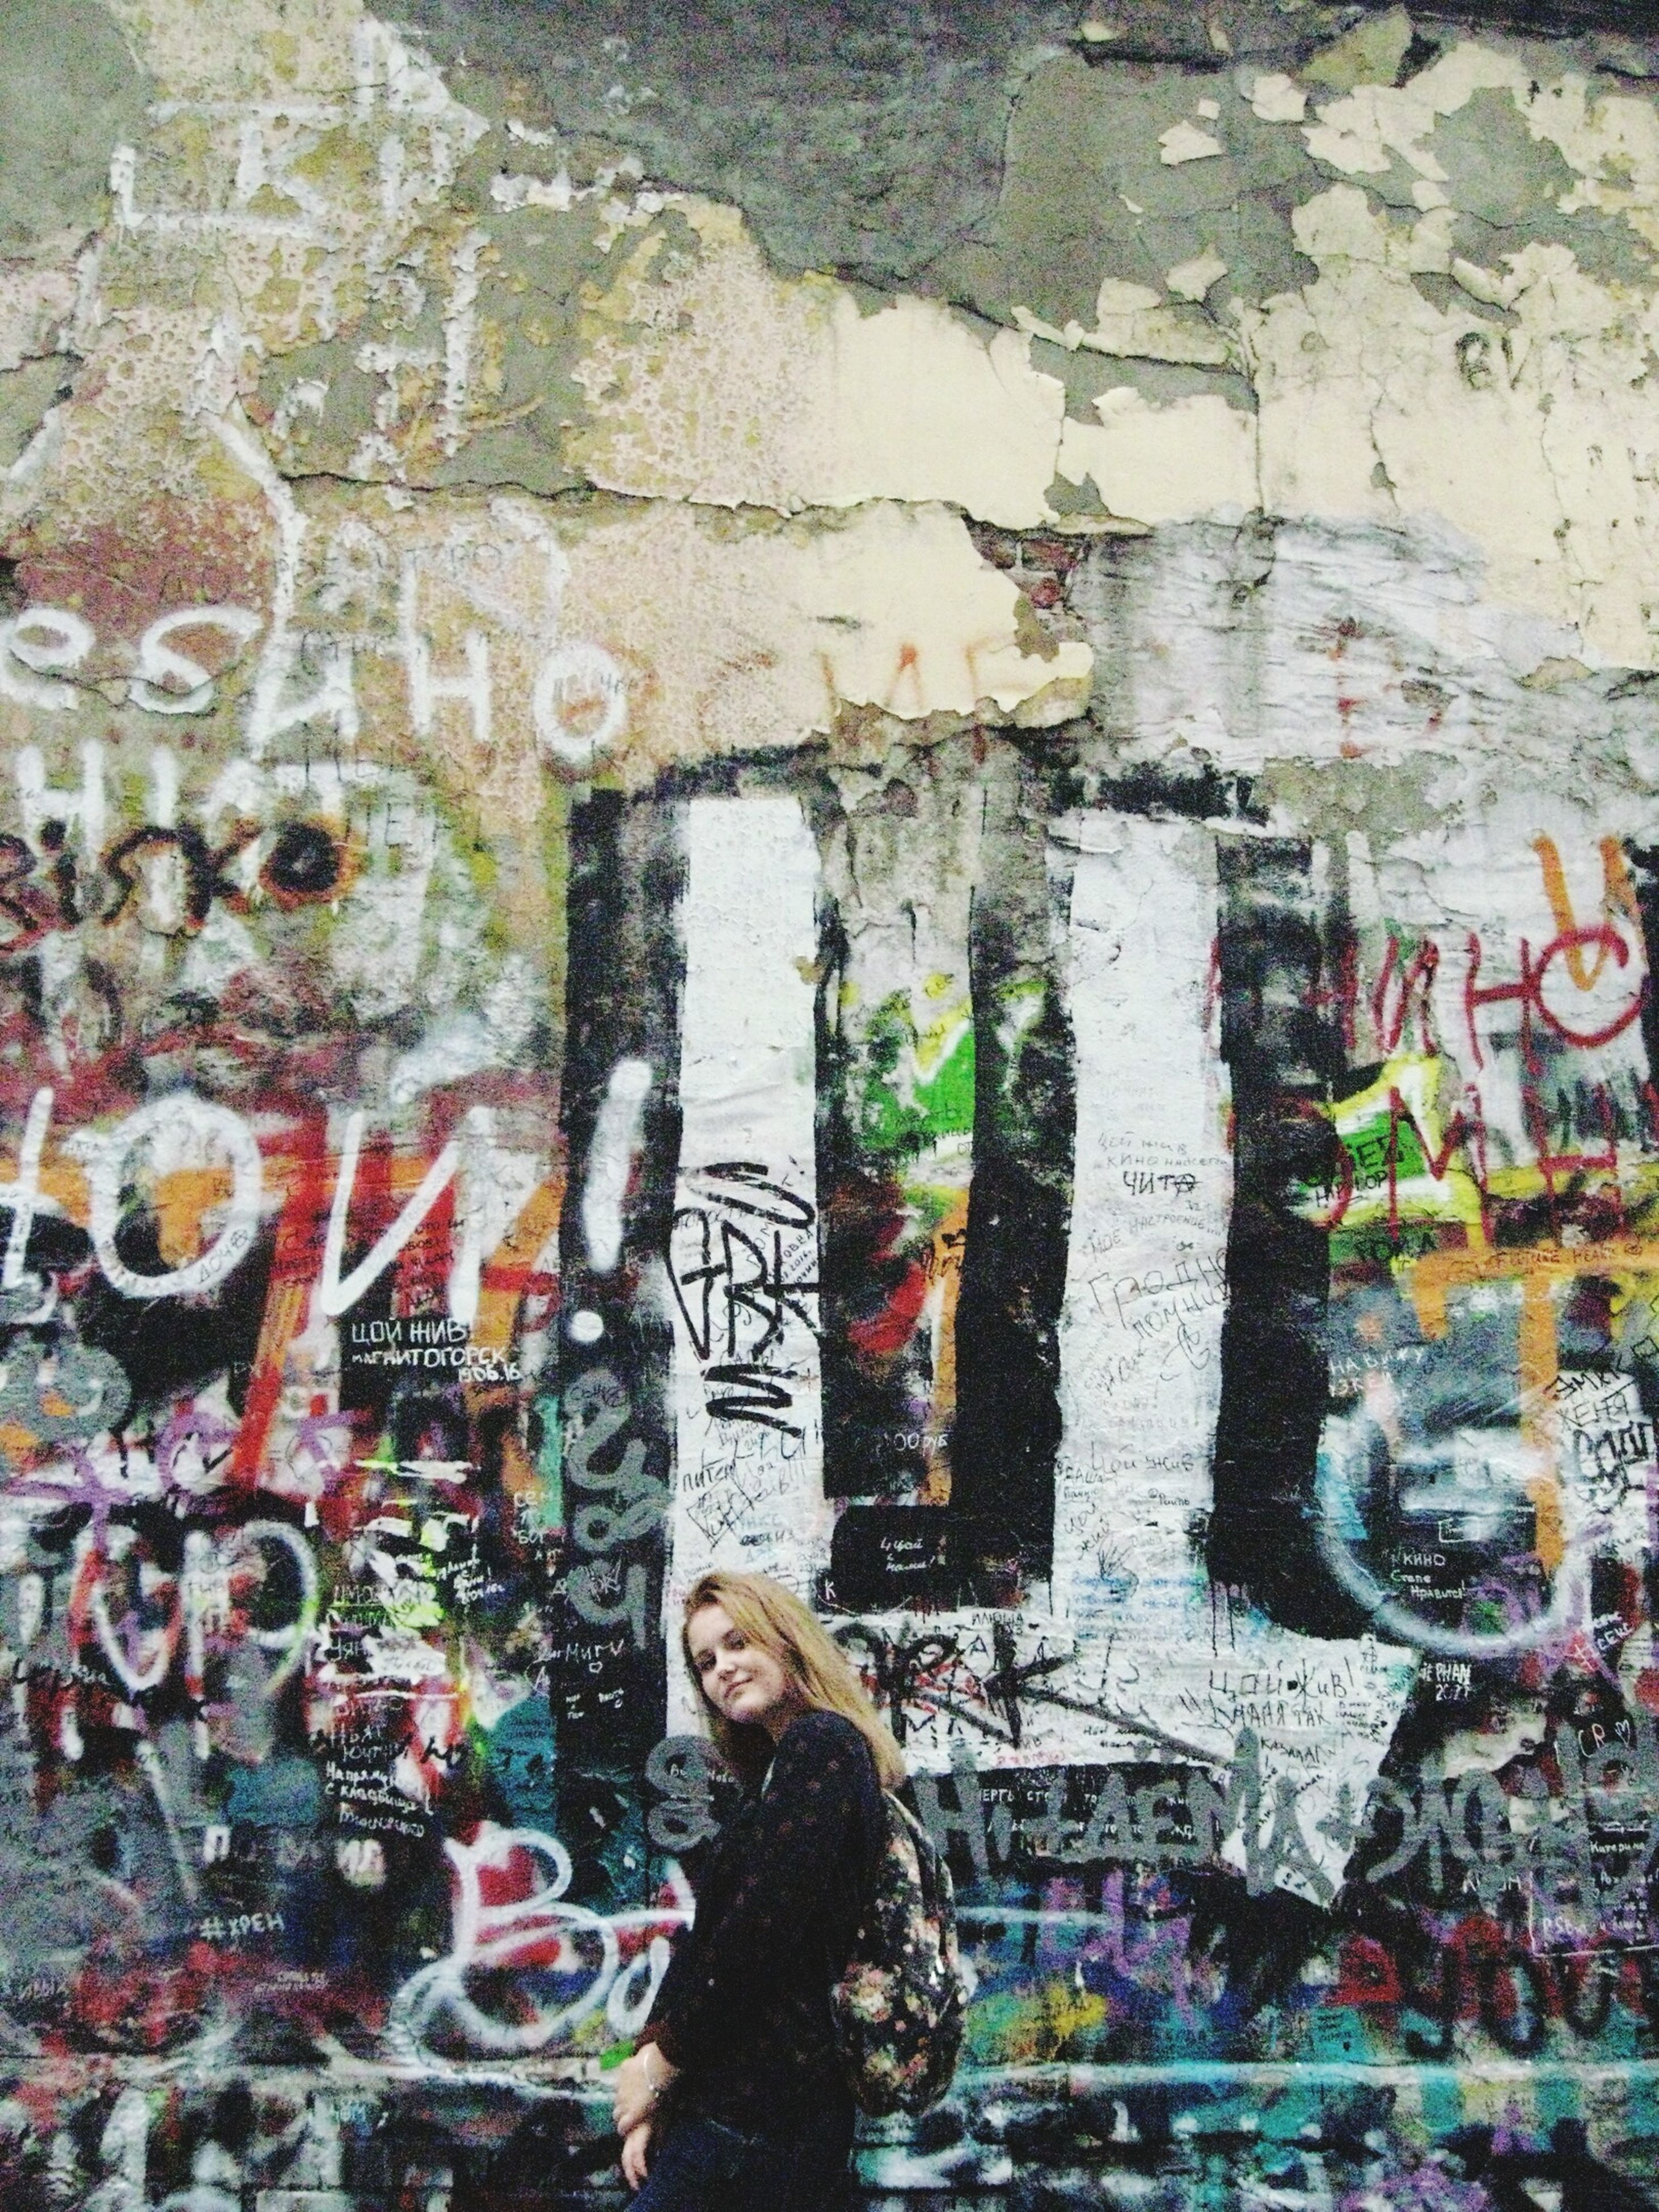 graffiti, wall - building feature, lifestyles, art, art and craft, men, leisure activity, standing, creativity, casual clothing, person, multi colored, outdoors, street art, day, full frame